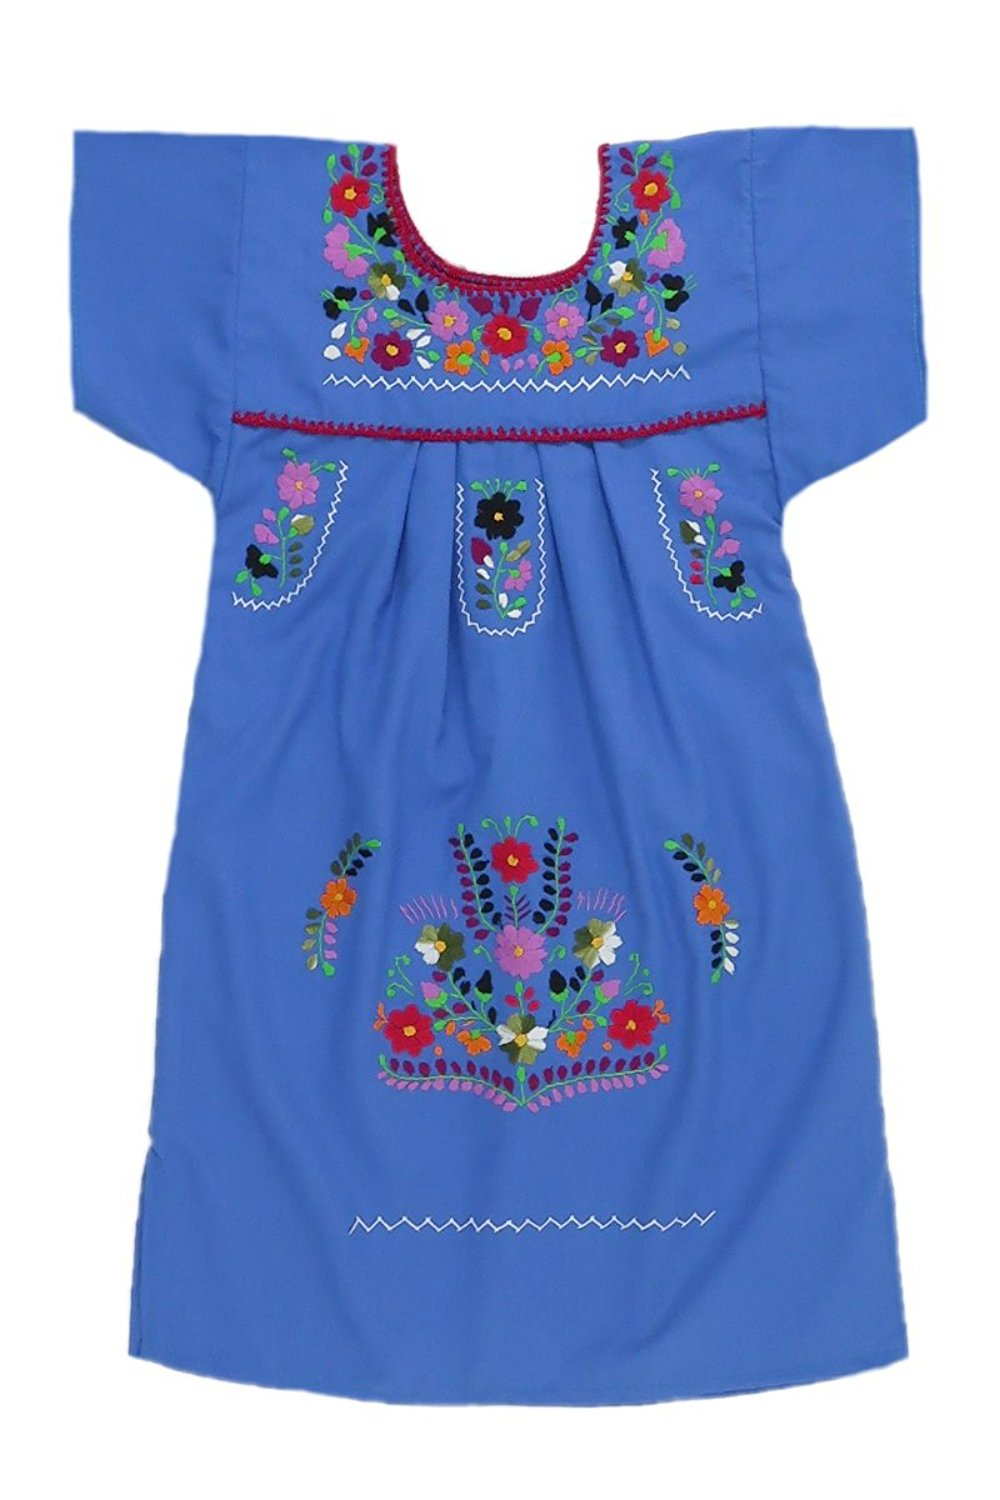 a909b4bc23d Get Quotations · Mexican Clothing Co Little Girls Mexican Dress Traditional  Tehuacan Poplin CT